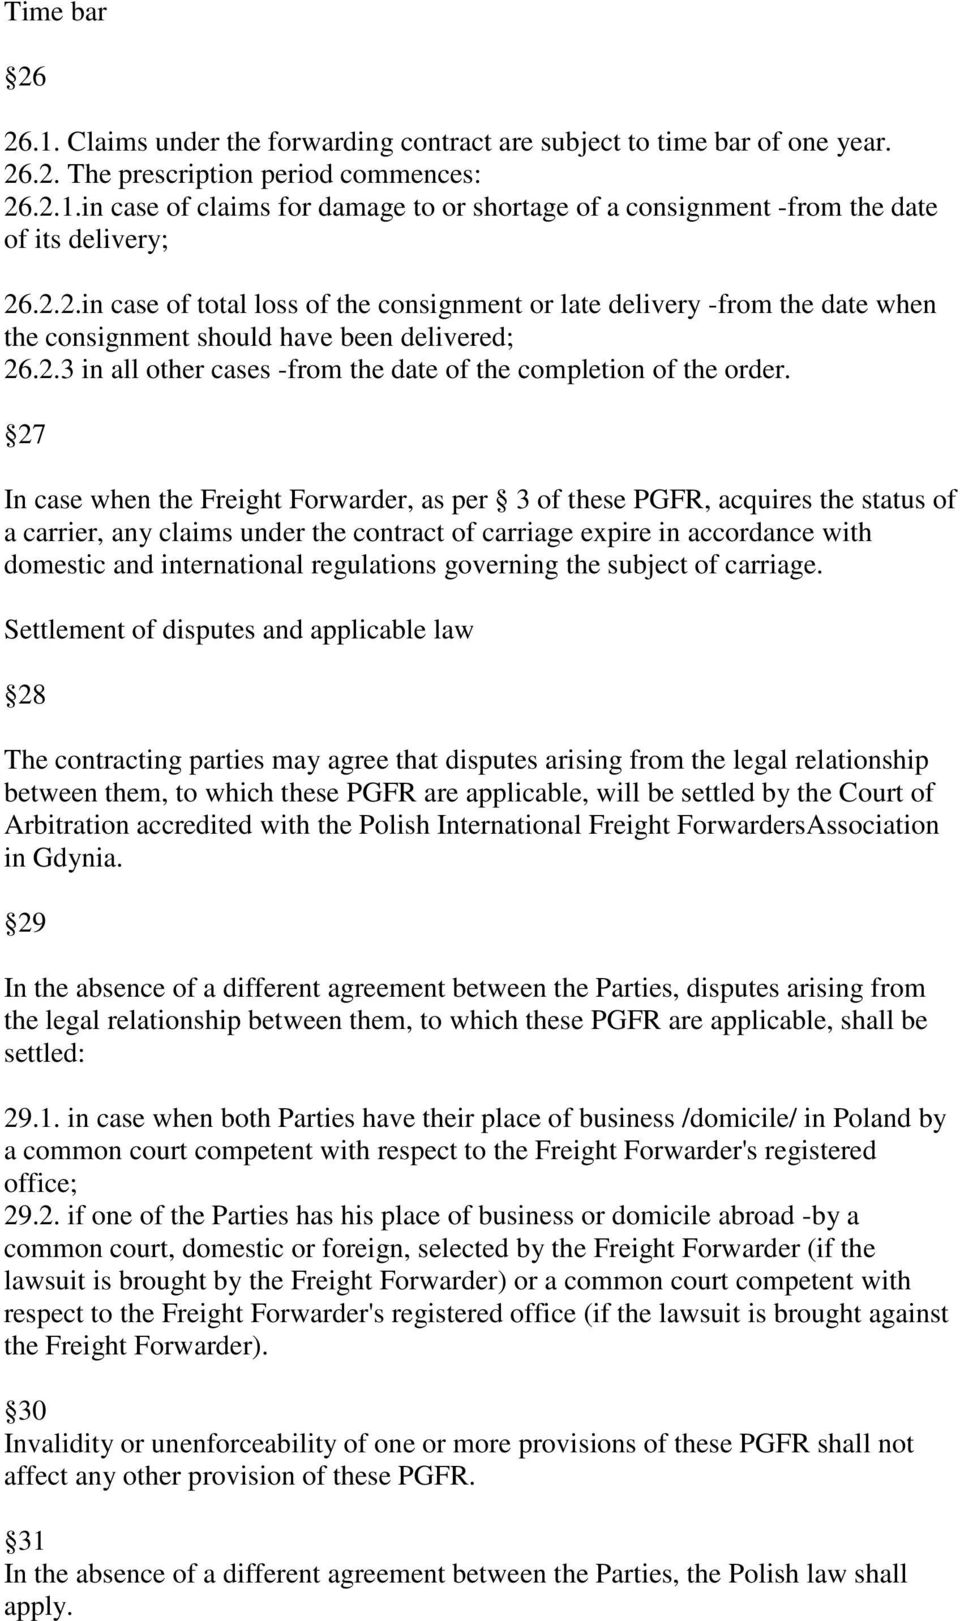 27 In case when the Freight Forwarder, as per 3 of these PGFR, acquires the status of a carrier, any claims under the contract of carriage expire in accordance with domestic and international